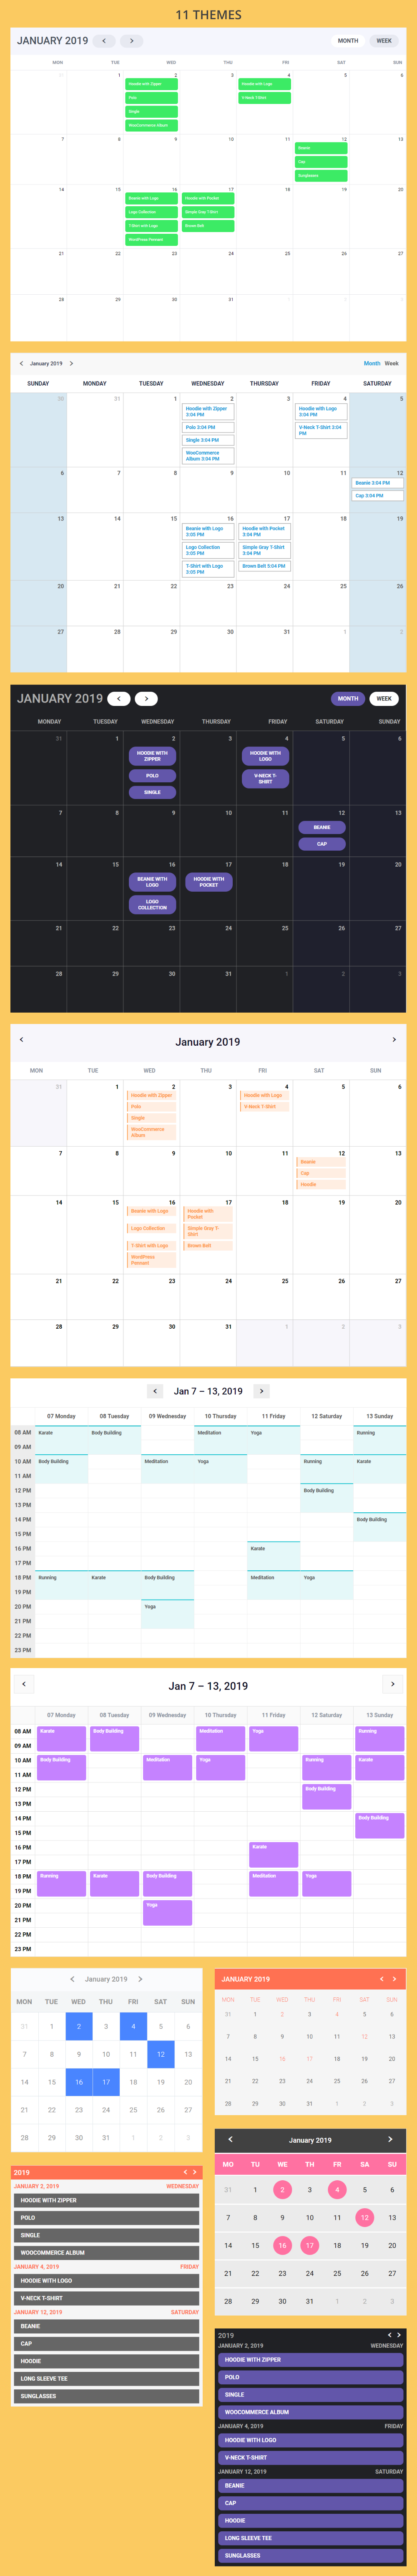 Calendar Anything | Show any existing WordPress custom post type in a calendar - 2